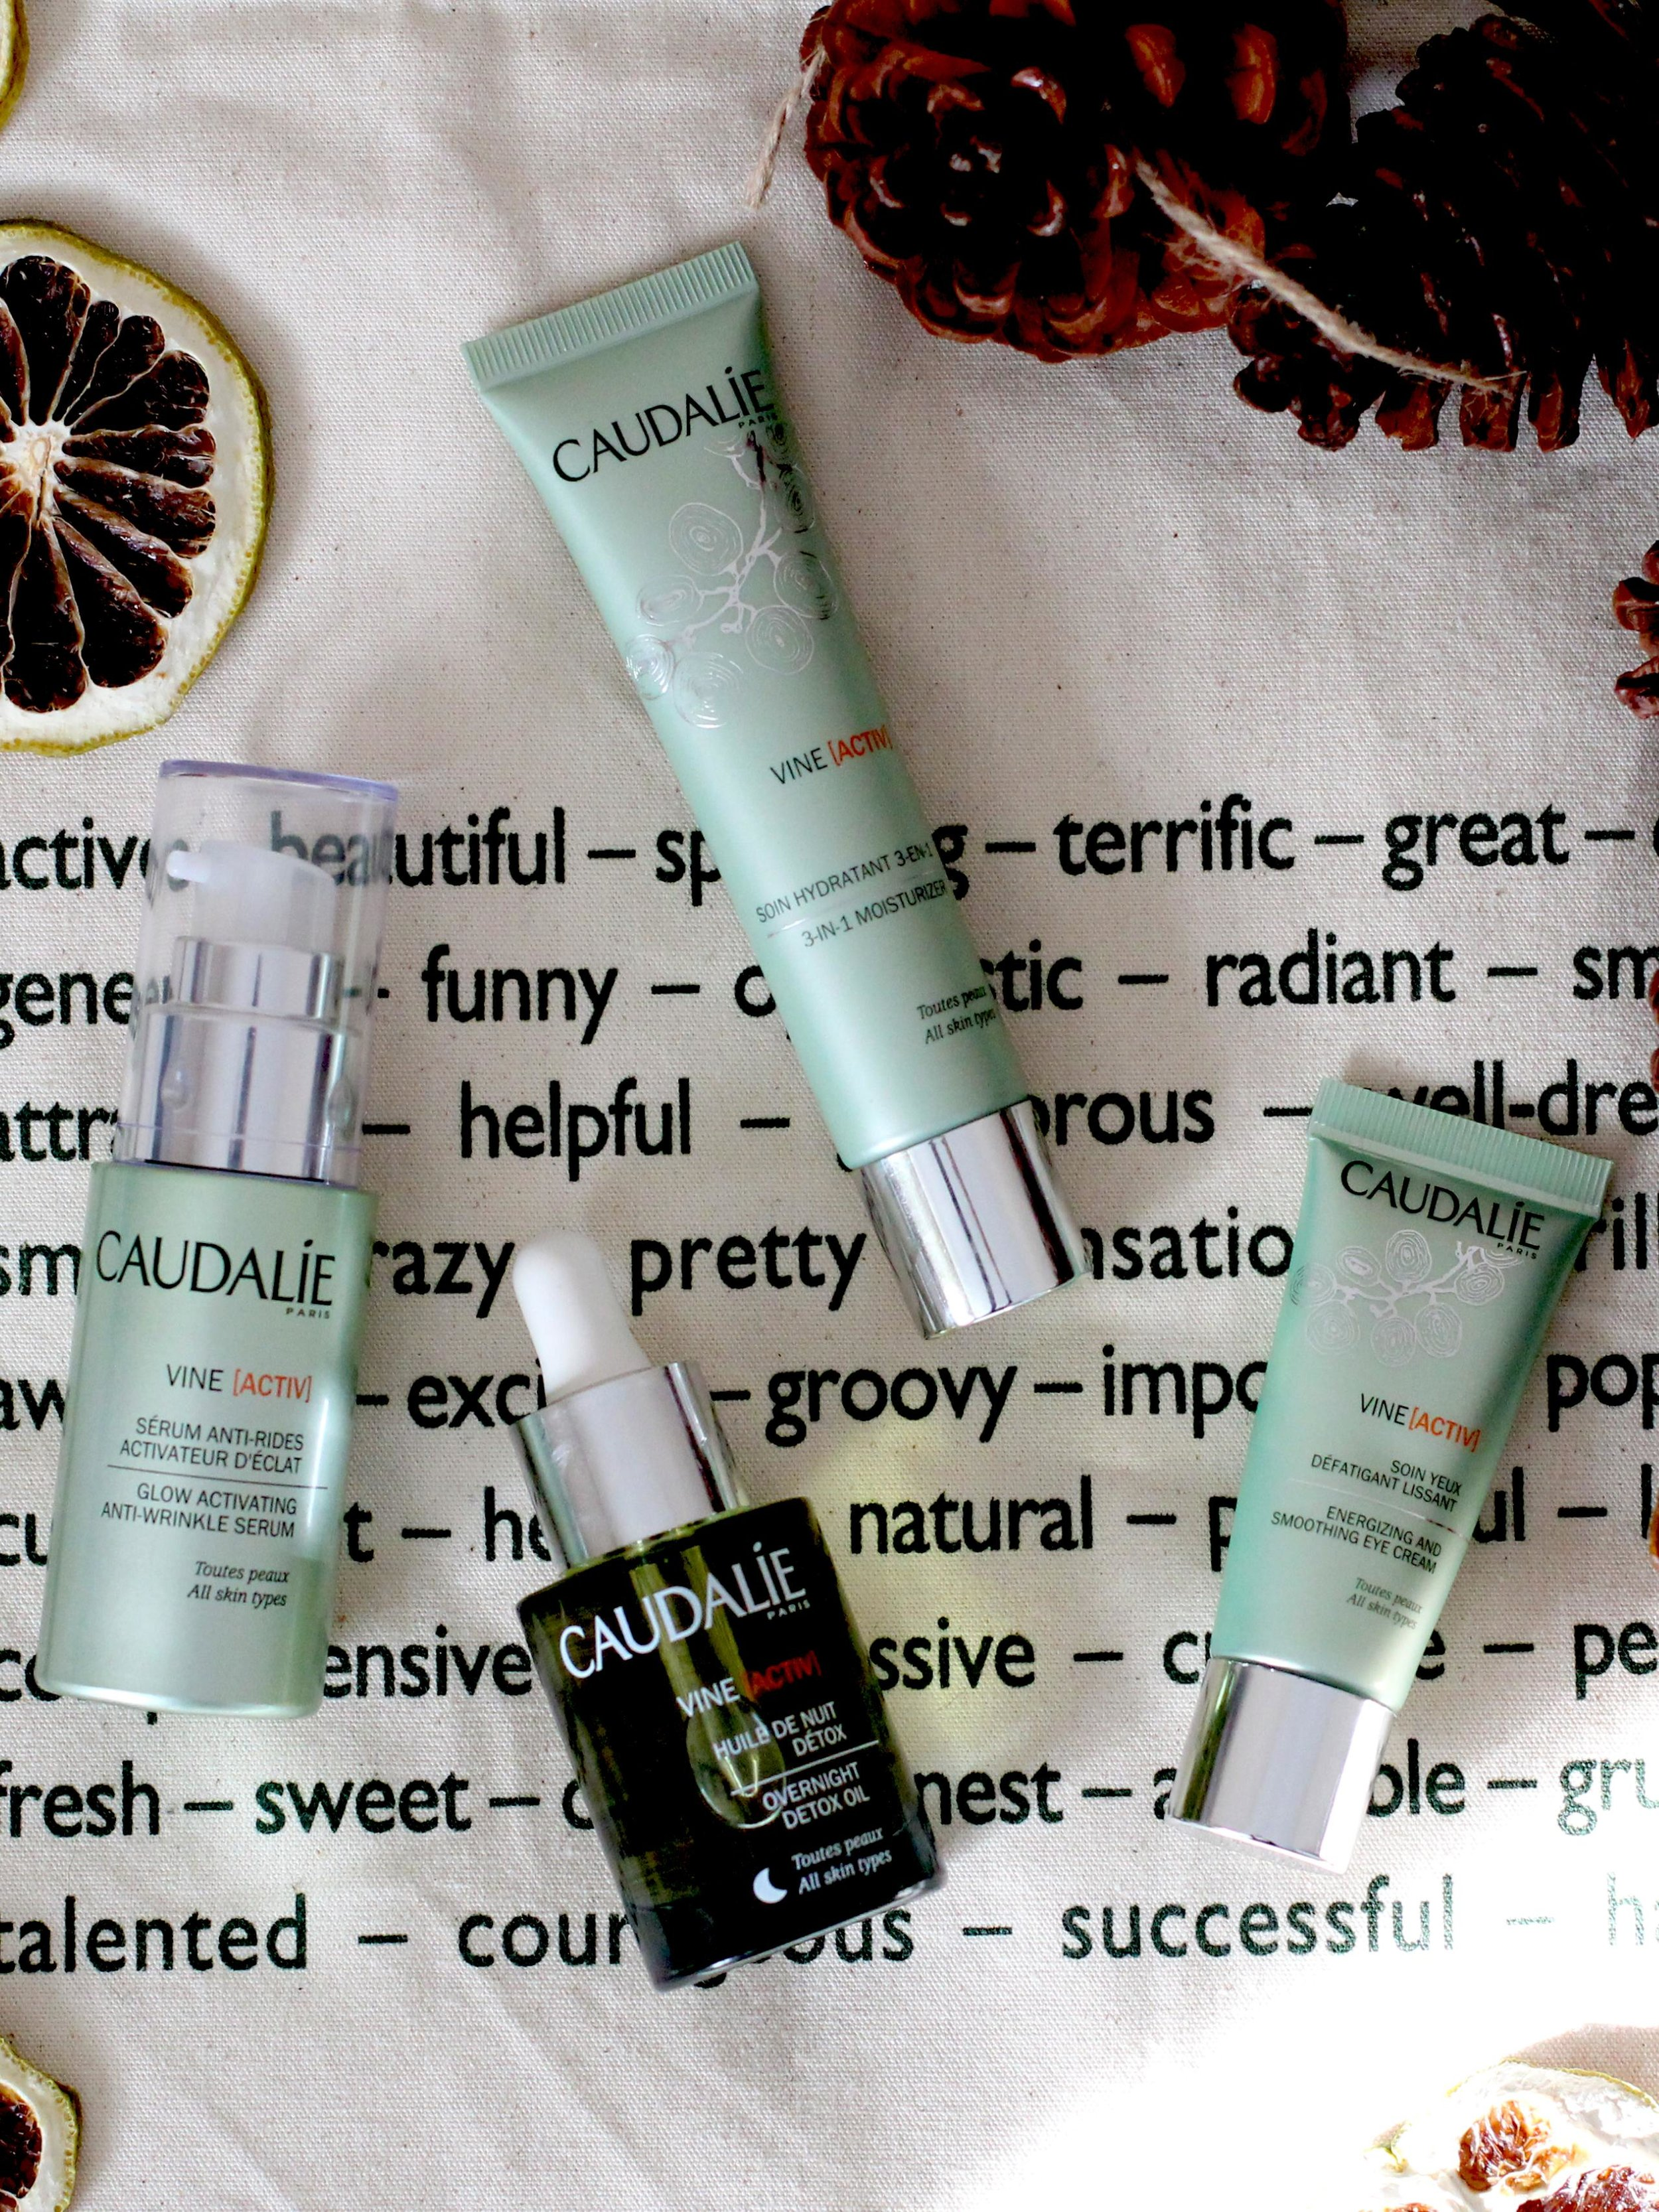 Caudalie's New Vine Activ Skincare Range Blends Into Your Busy Lifestyle